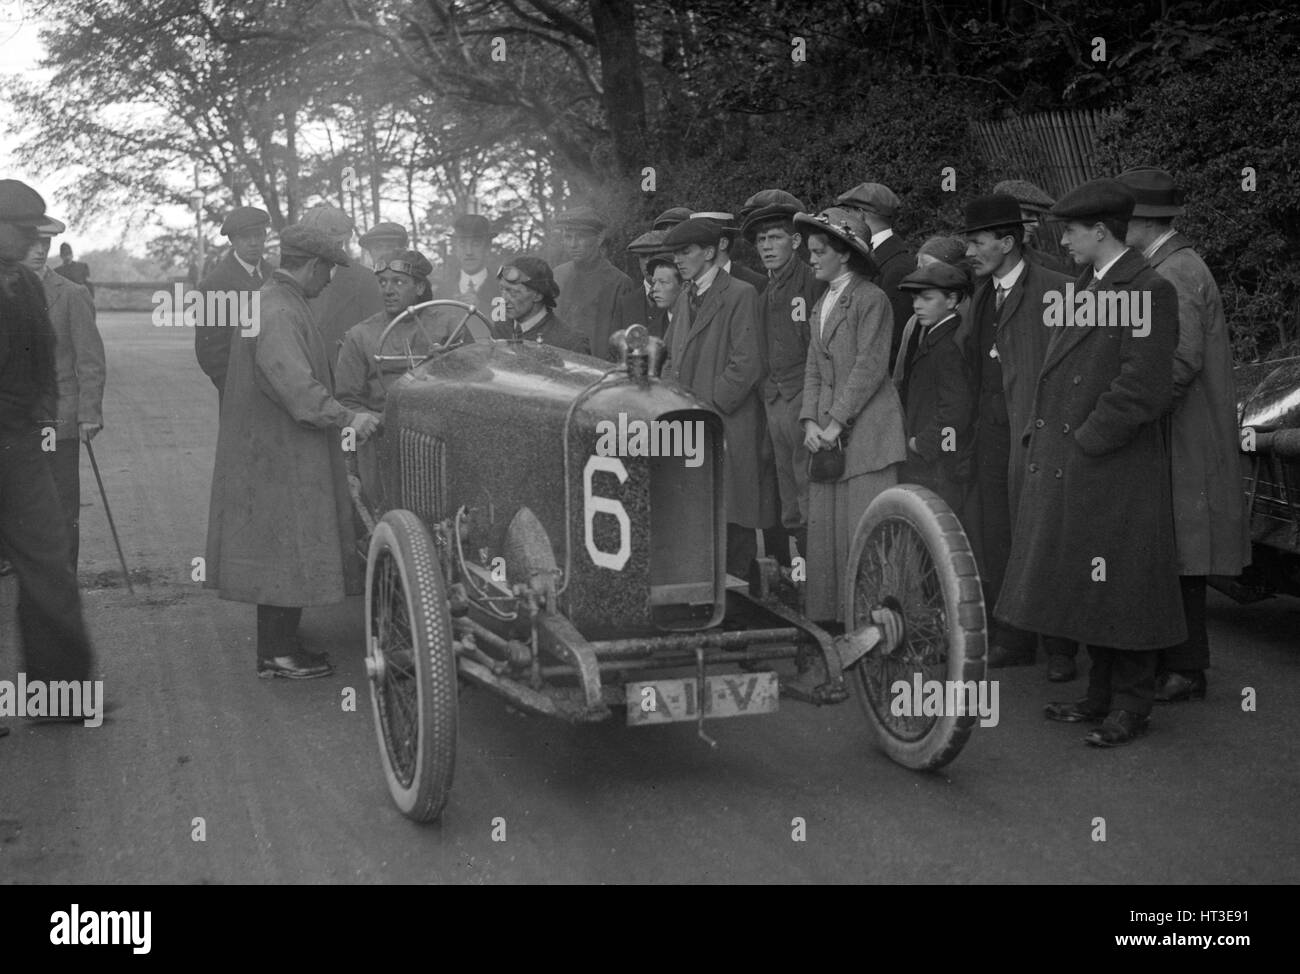 AJ Hancock's 3308 cc Vauxhall at the RAC Isle of Man TT race, 10 June 1914. Artist: Bill Brunell. - Stock Image